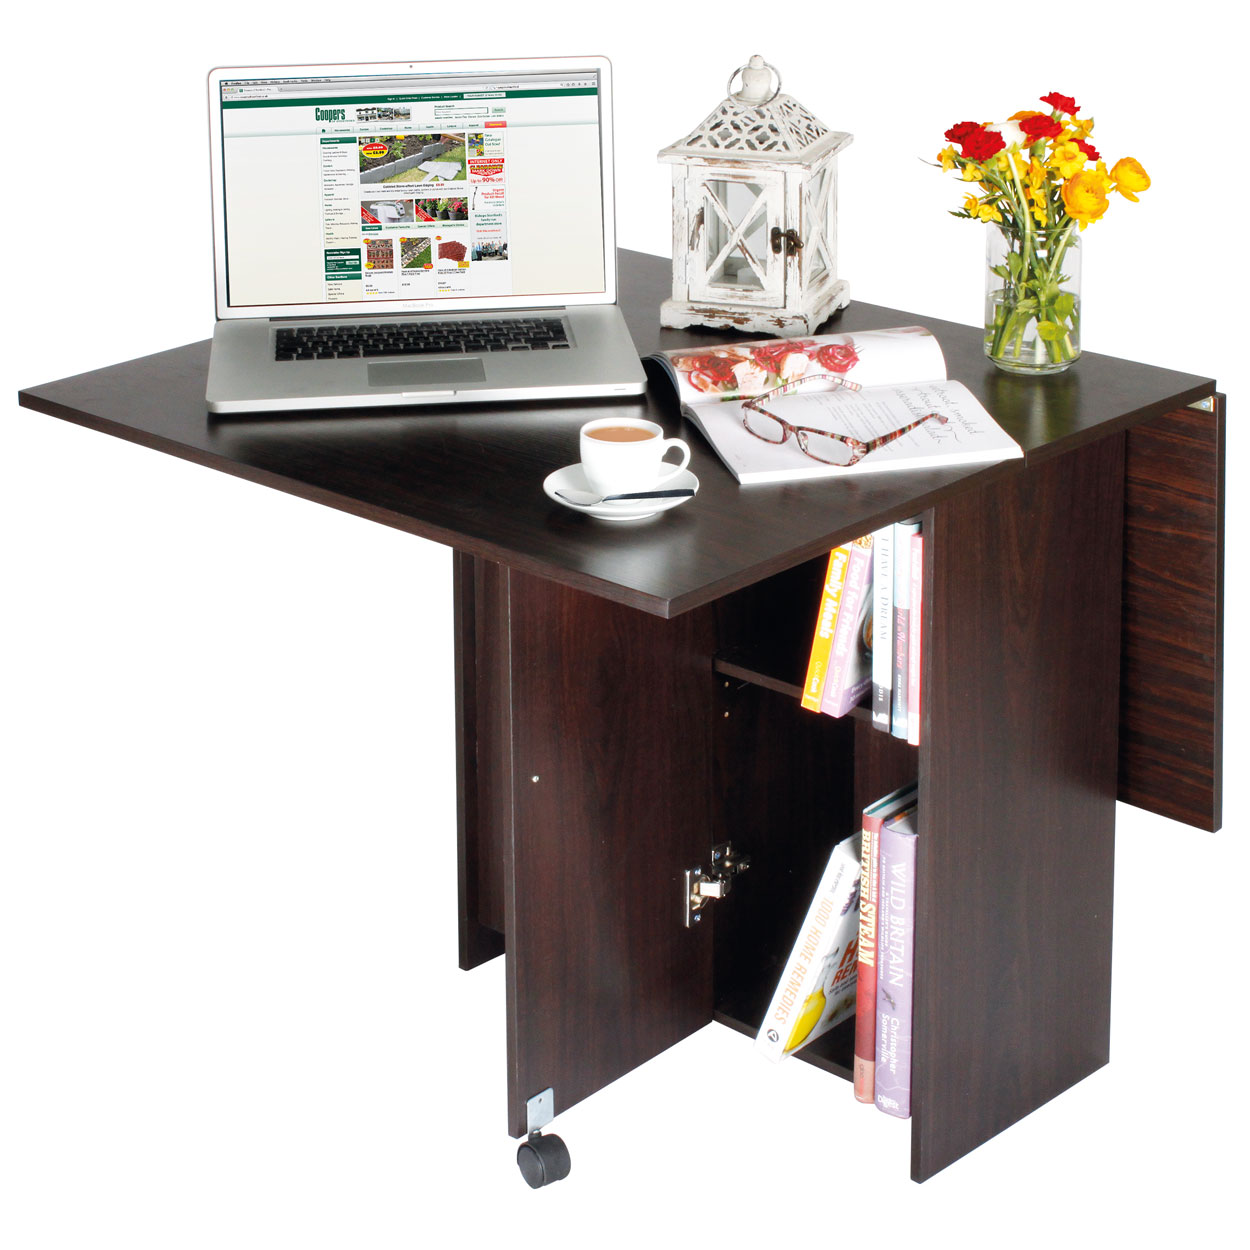 Multi Use Table folding multi use table | home | coopers of stortford